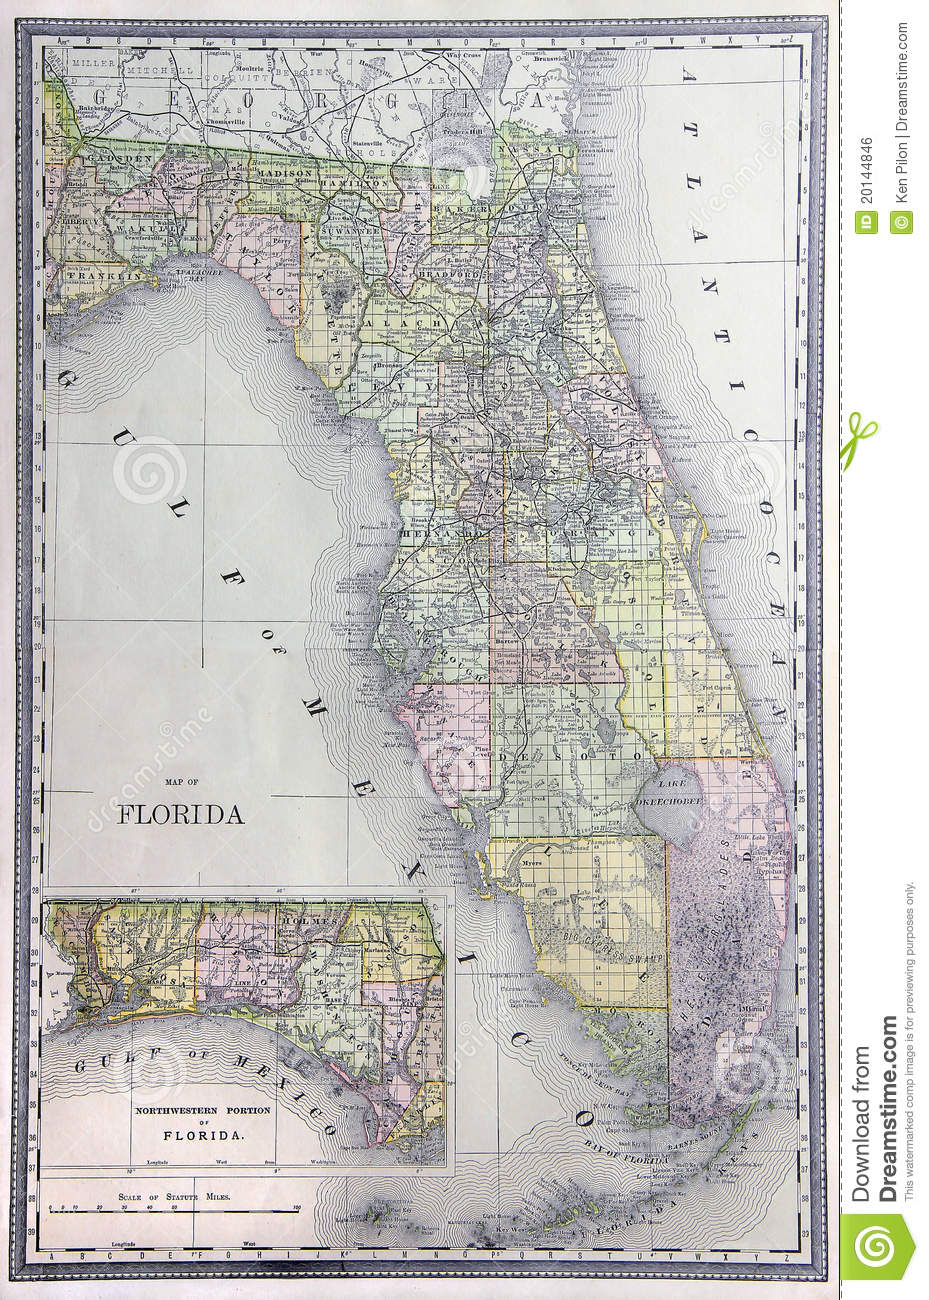 Antique Map Of Florida.Old Map Of Florida Stock Photo Image Of Paper Atlas 20144846